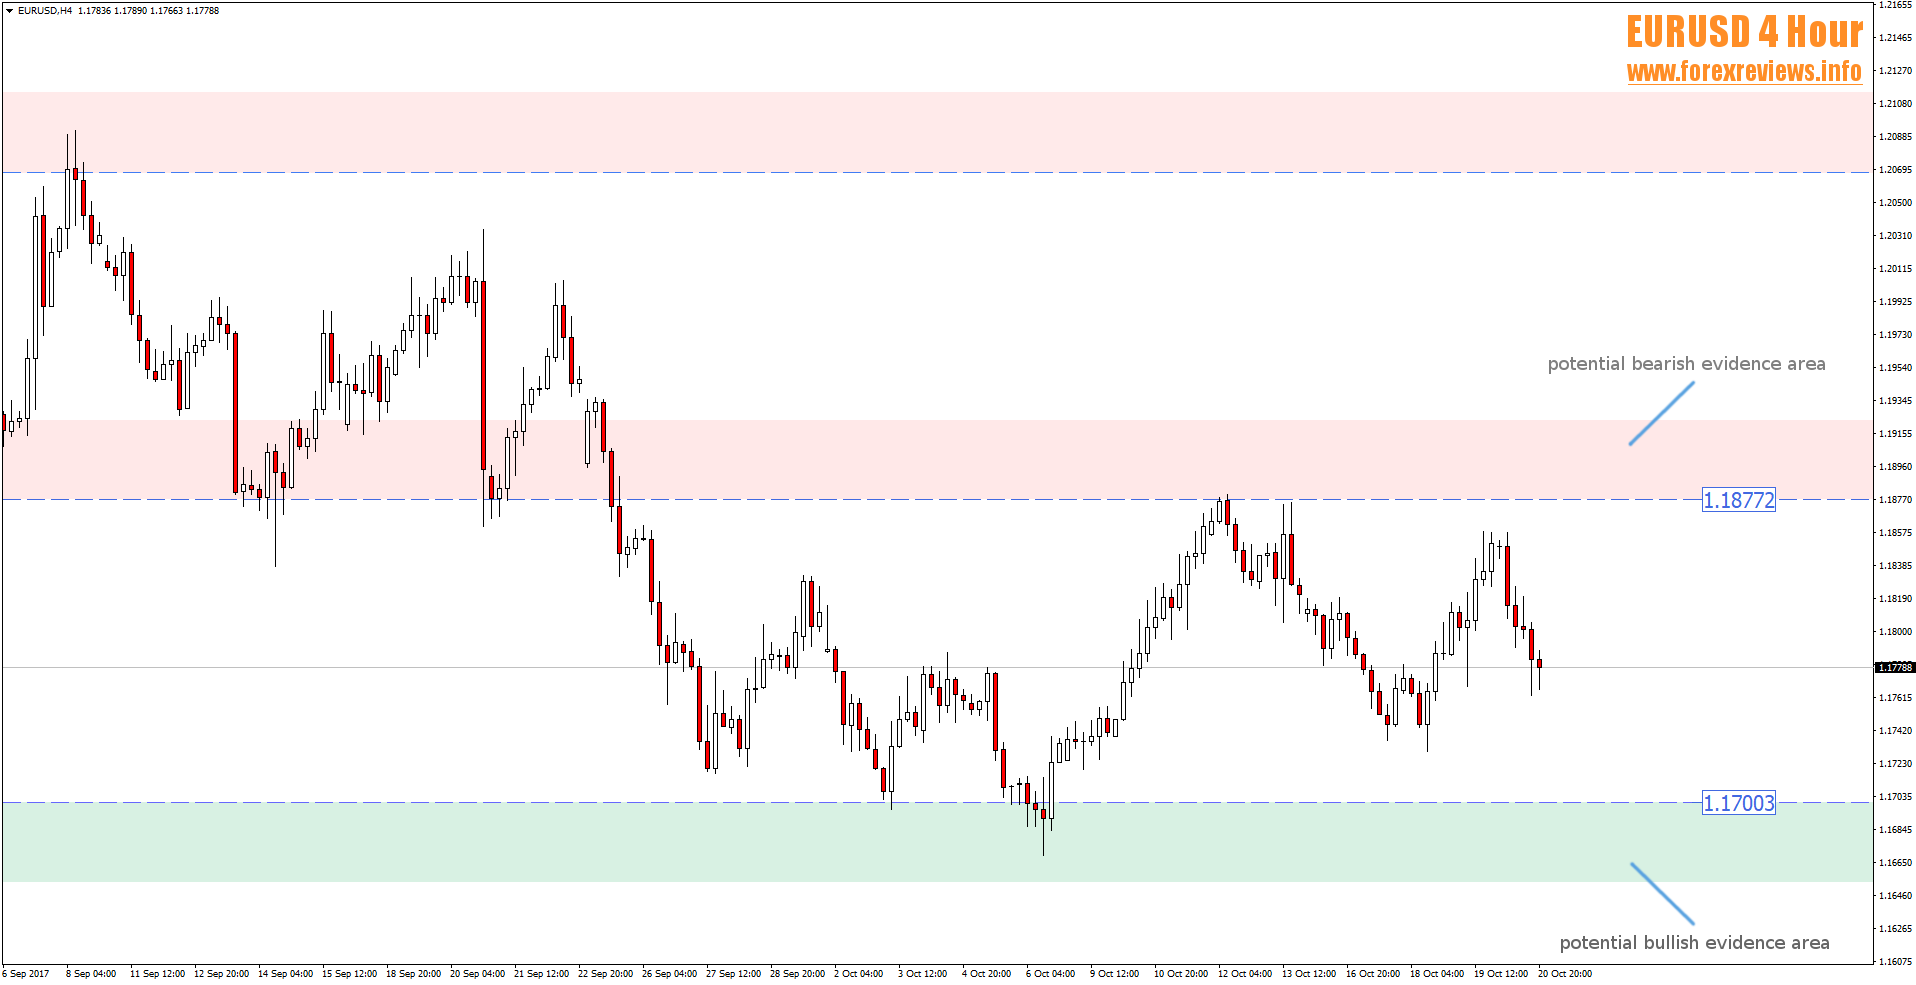 EURUSD trading areas 23rd to 27th of october